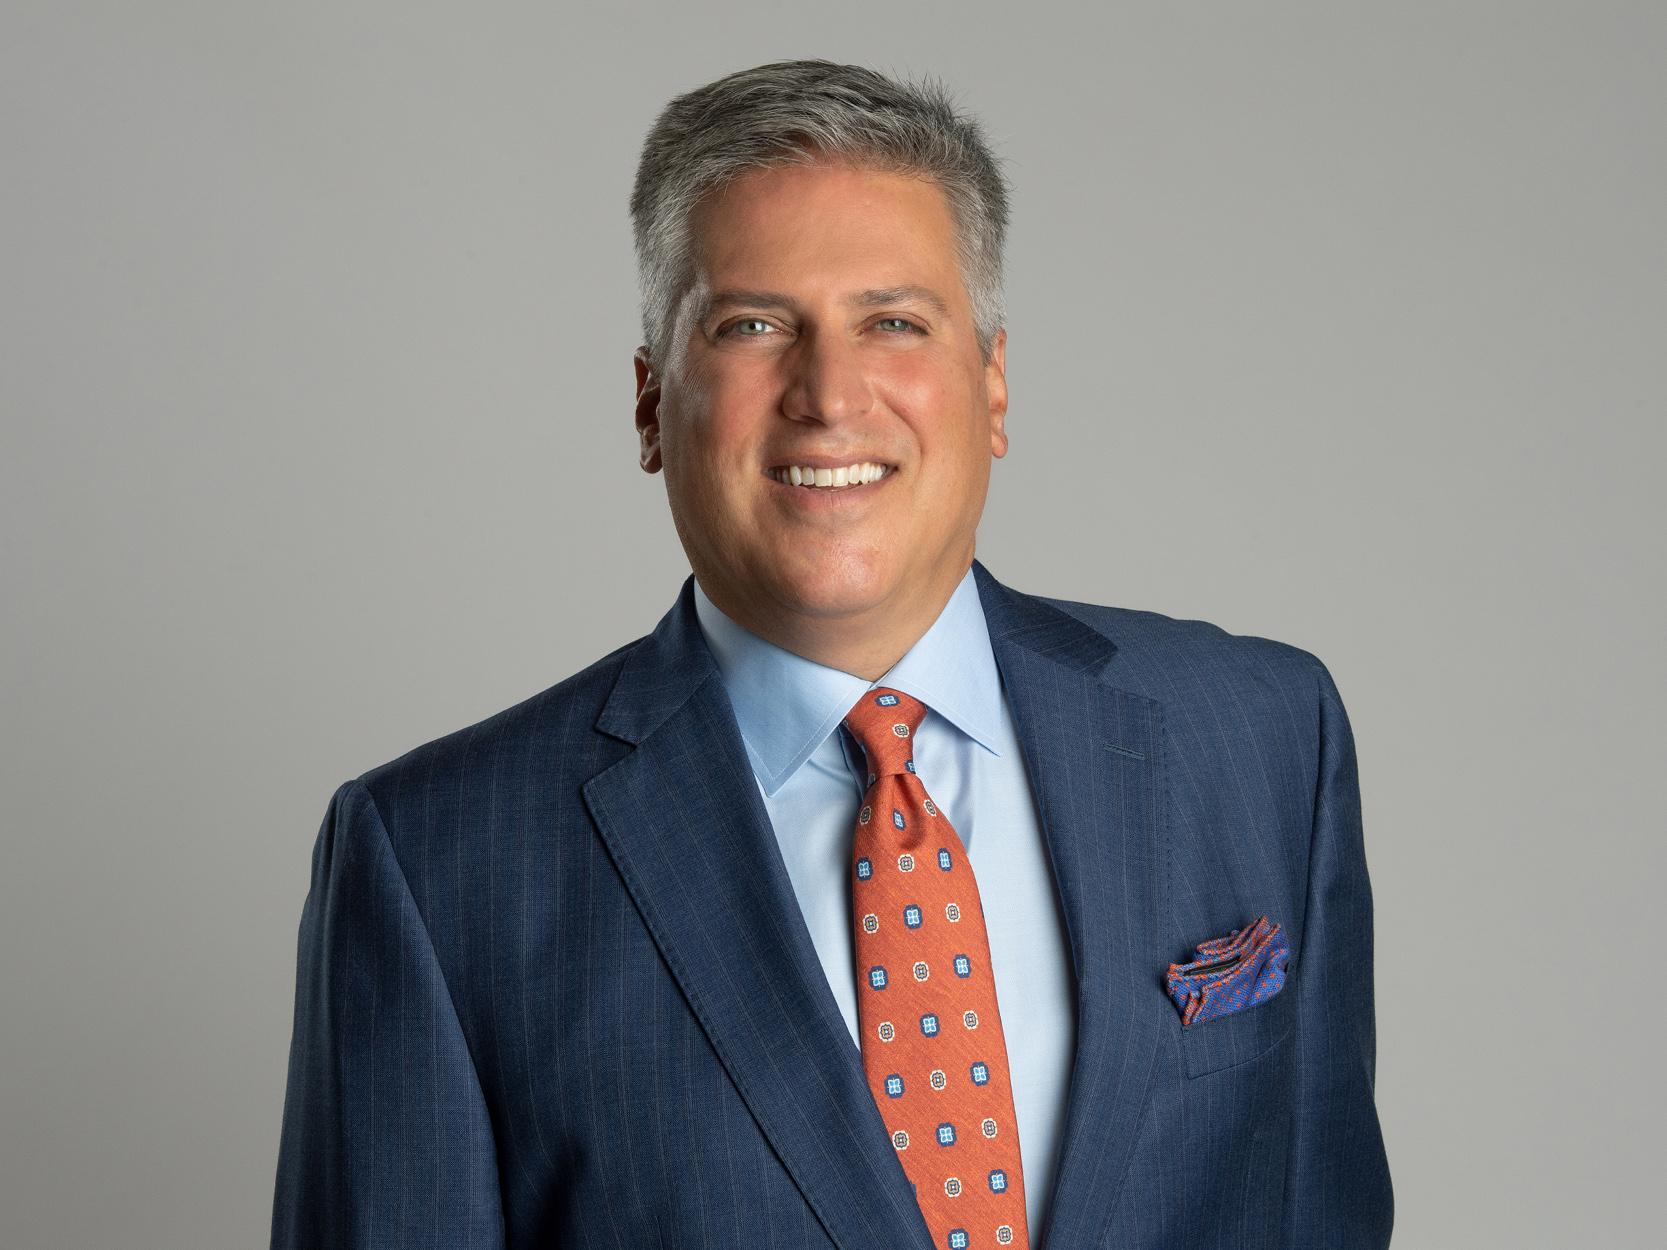 Steve Levy is a 1987 Oswego alumnus well known for his work with ESPN, including play-by-play for Monday Night Football